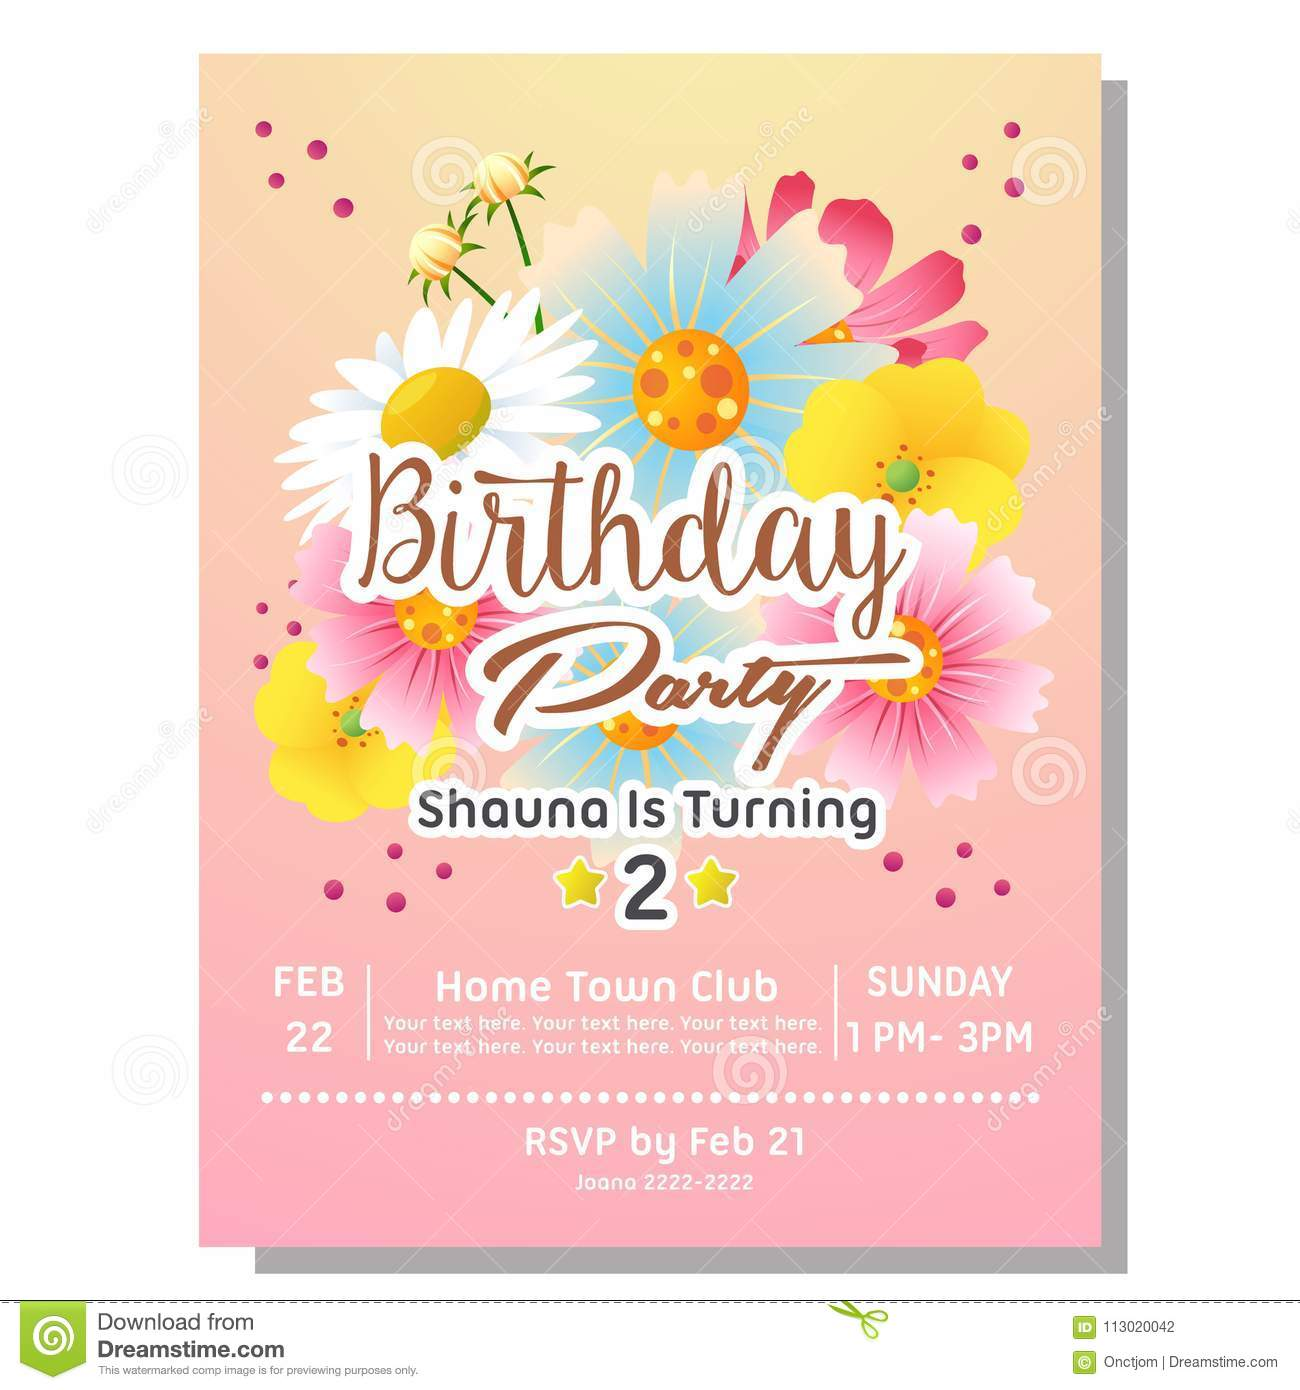 2nd Birthday Party Invitation Card With Flower